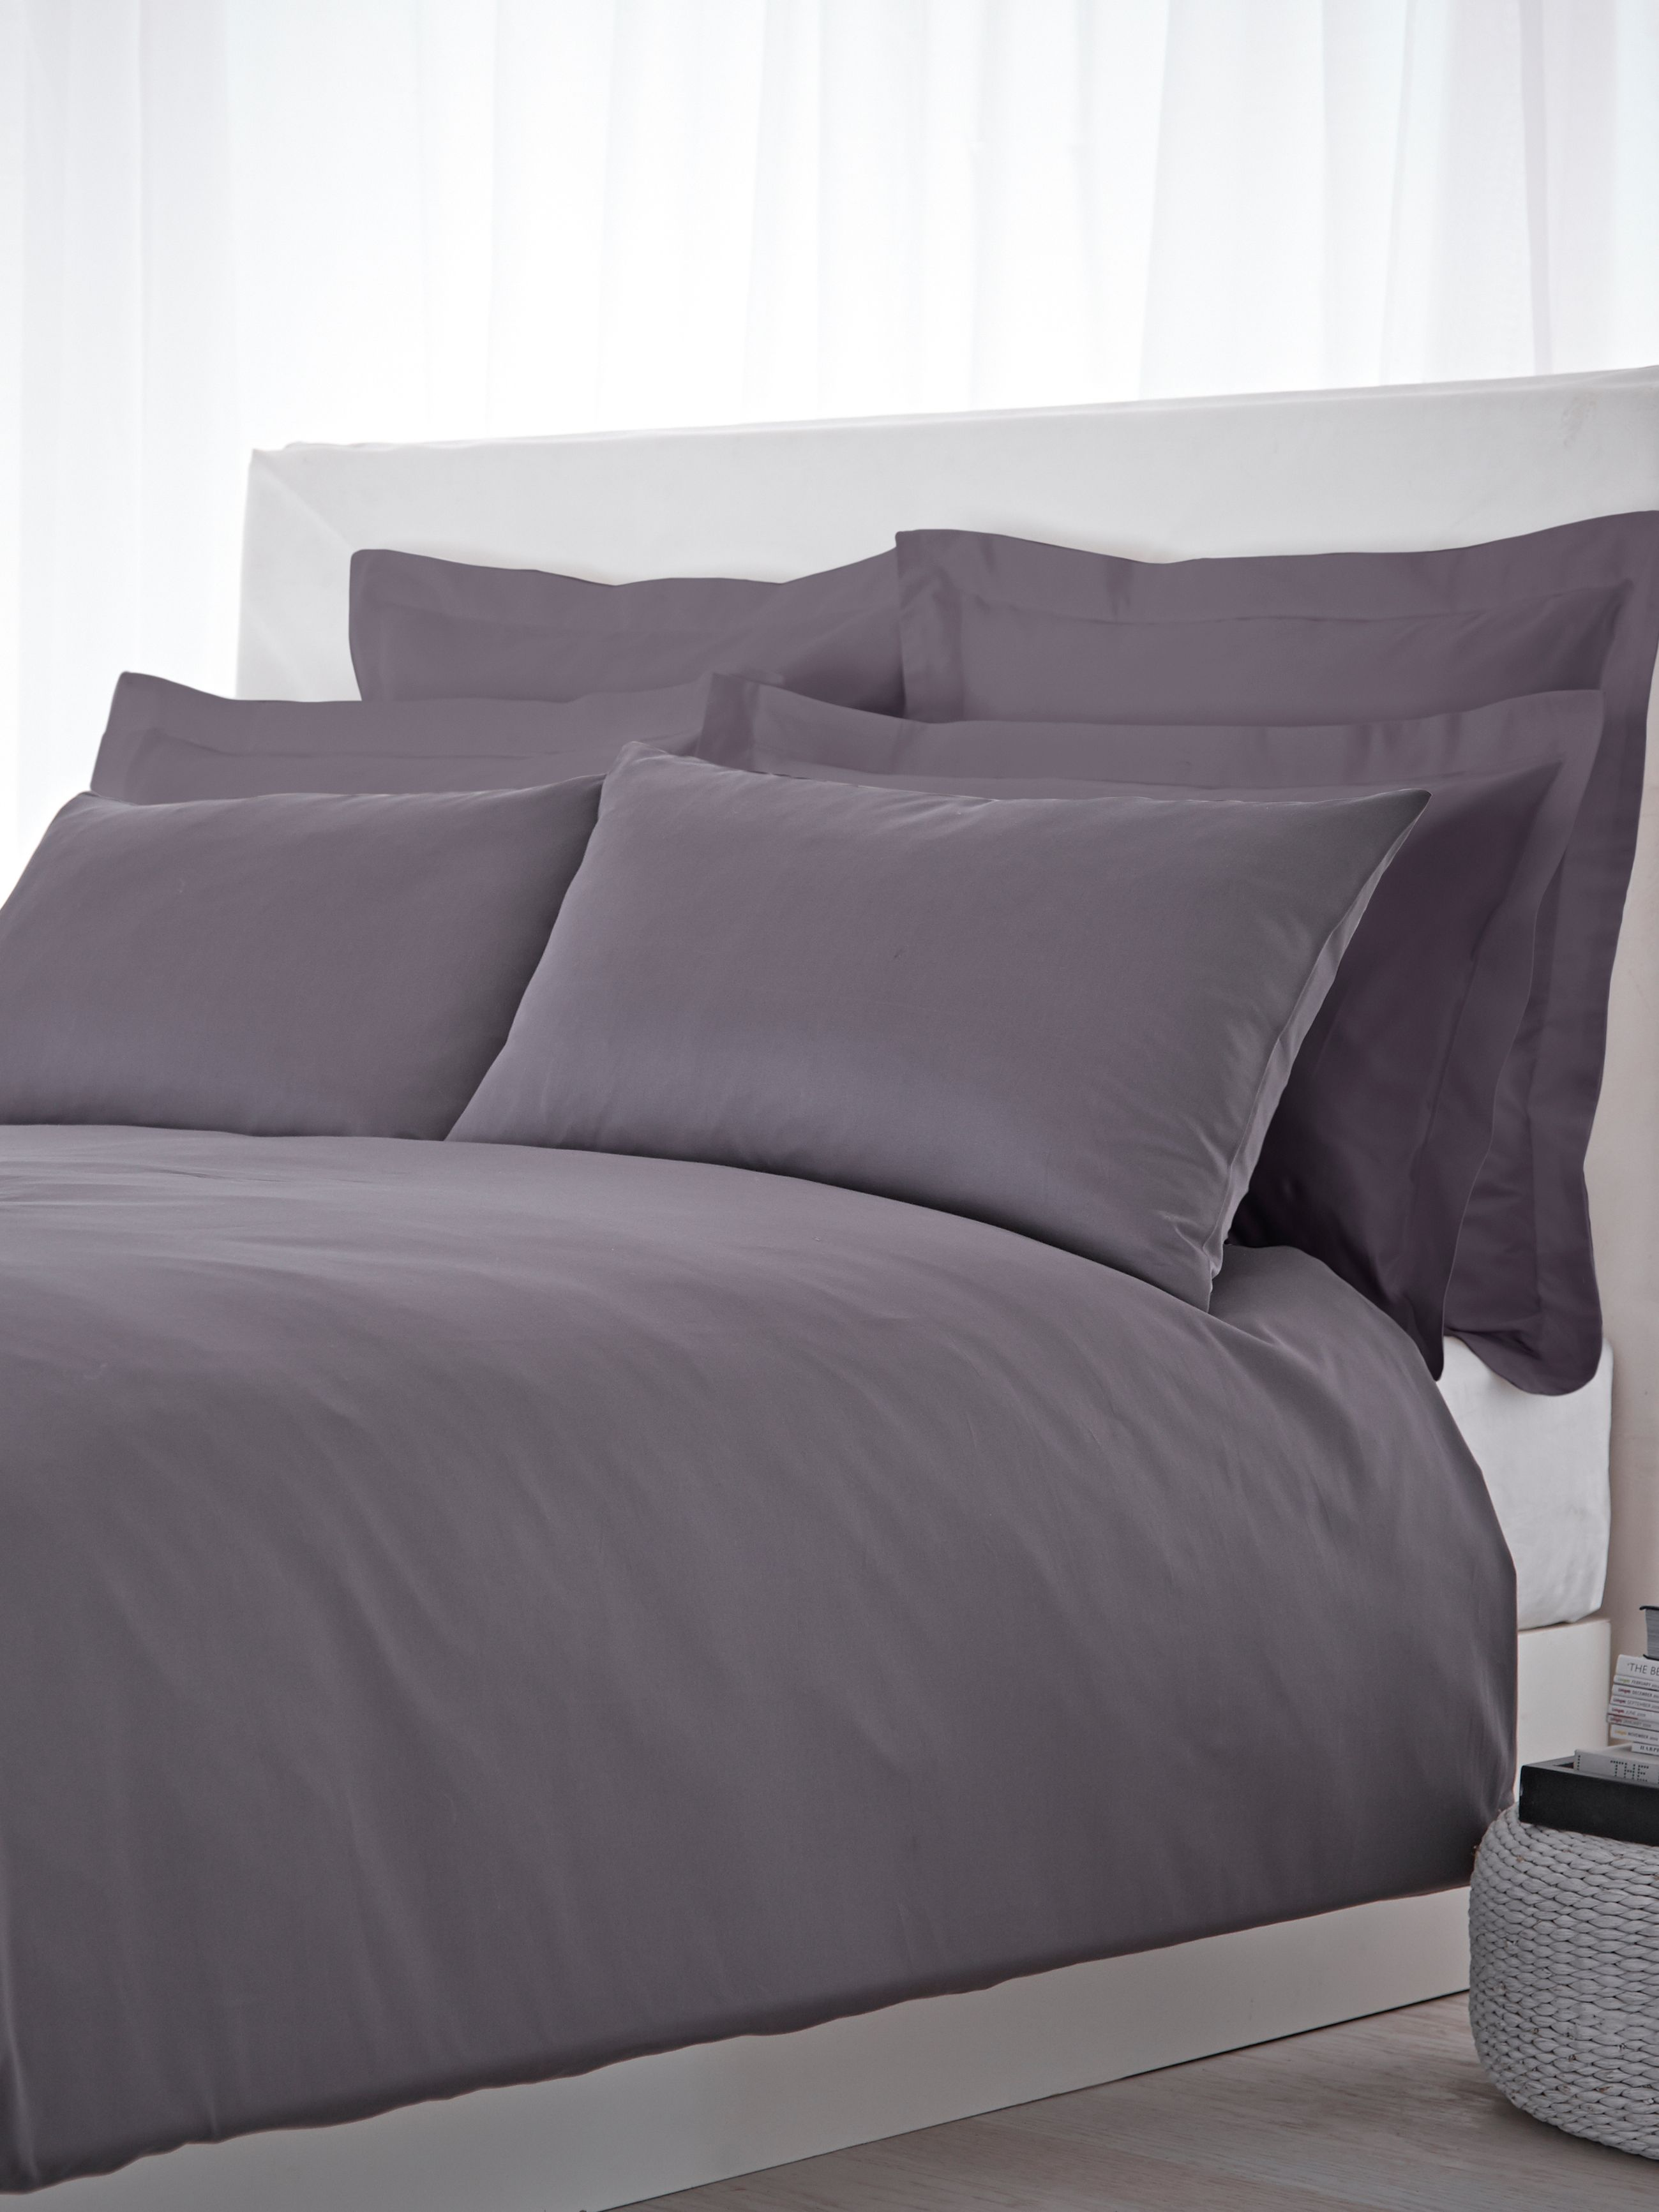 500 thread count bed linen in slate